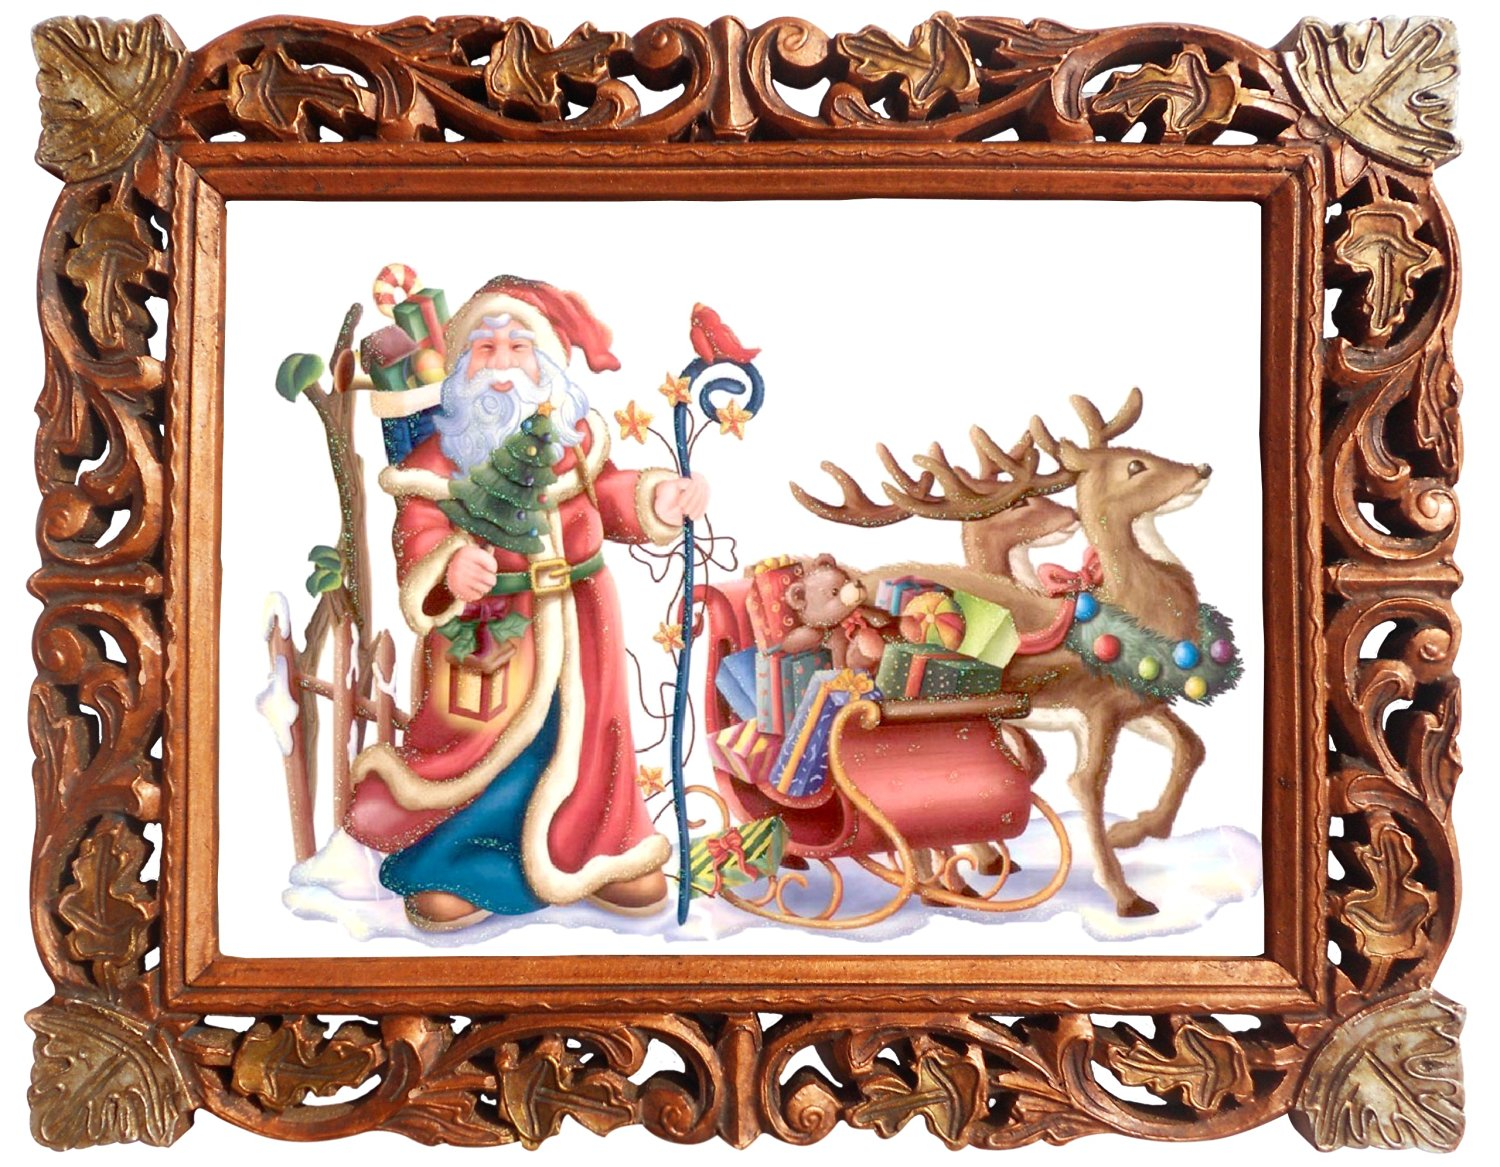 Santa Claus and His Reindeer, Poster Framed in Wood Craft Frame, Indian Decorative Wood Frame